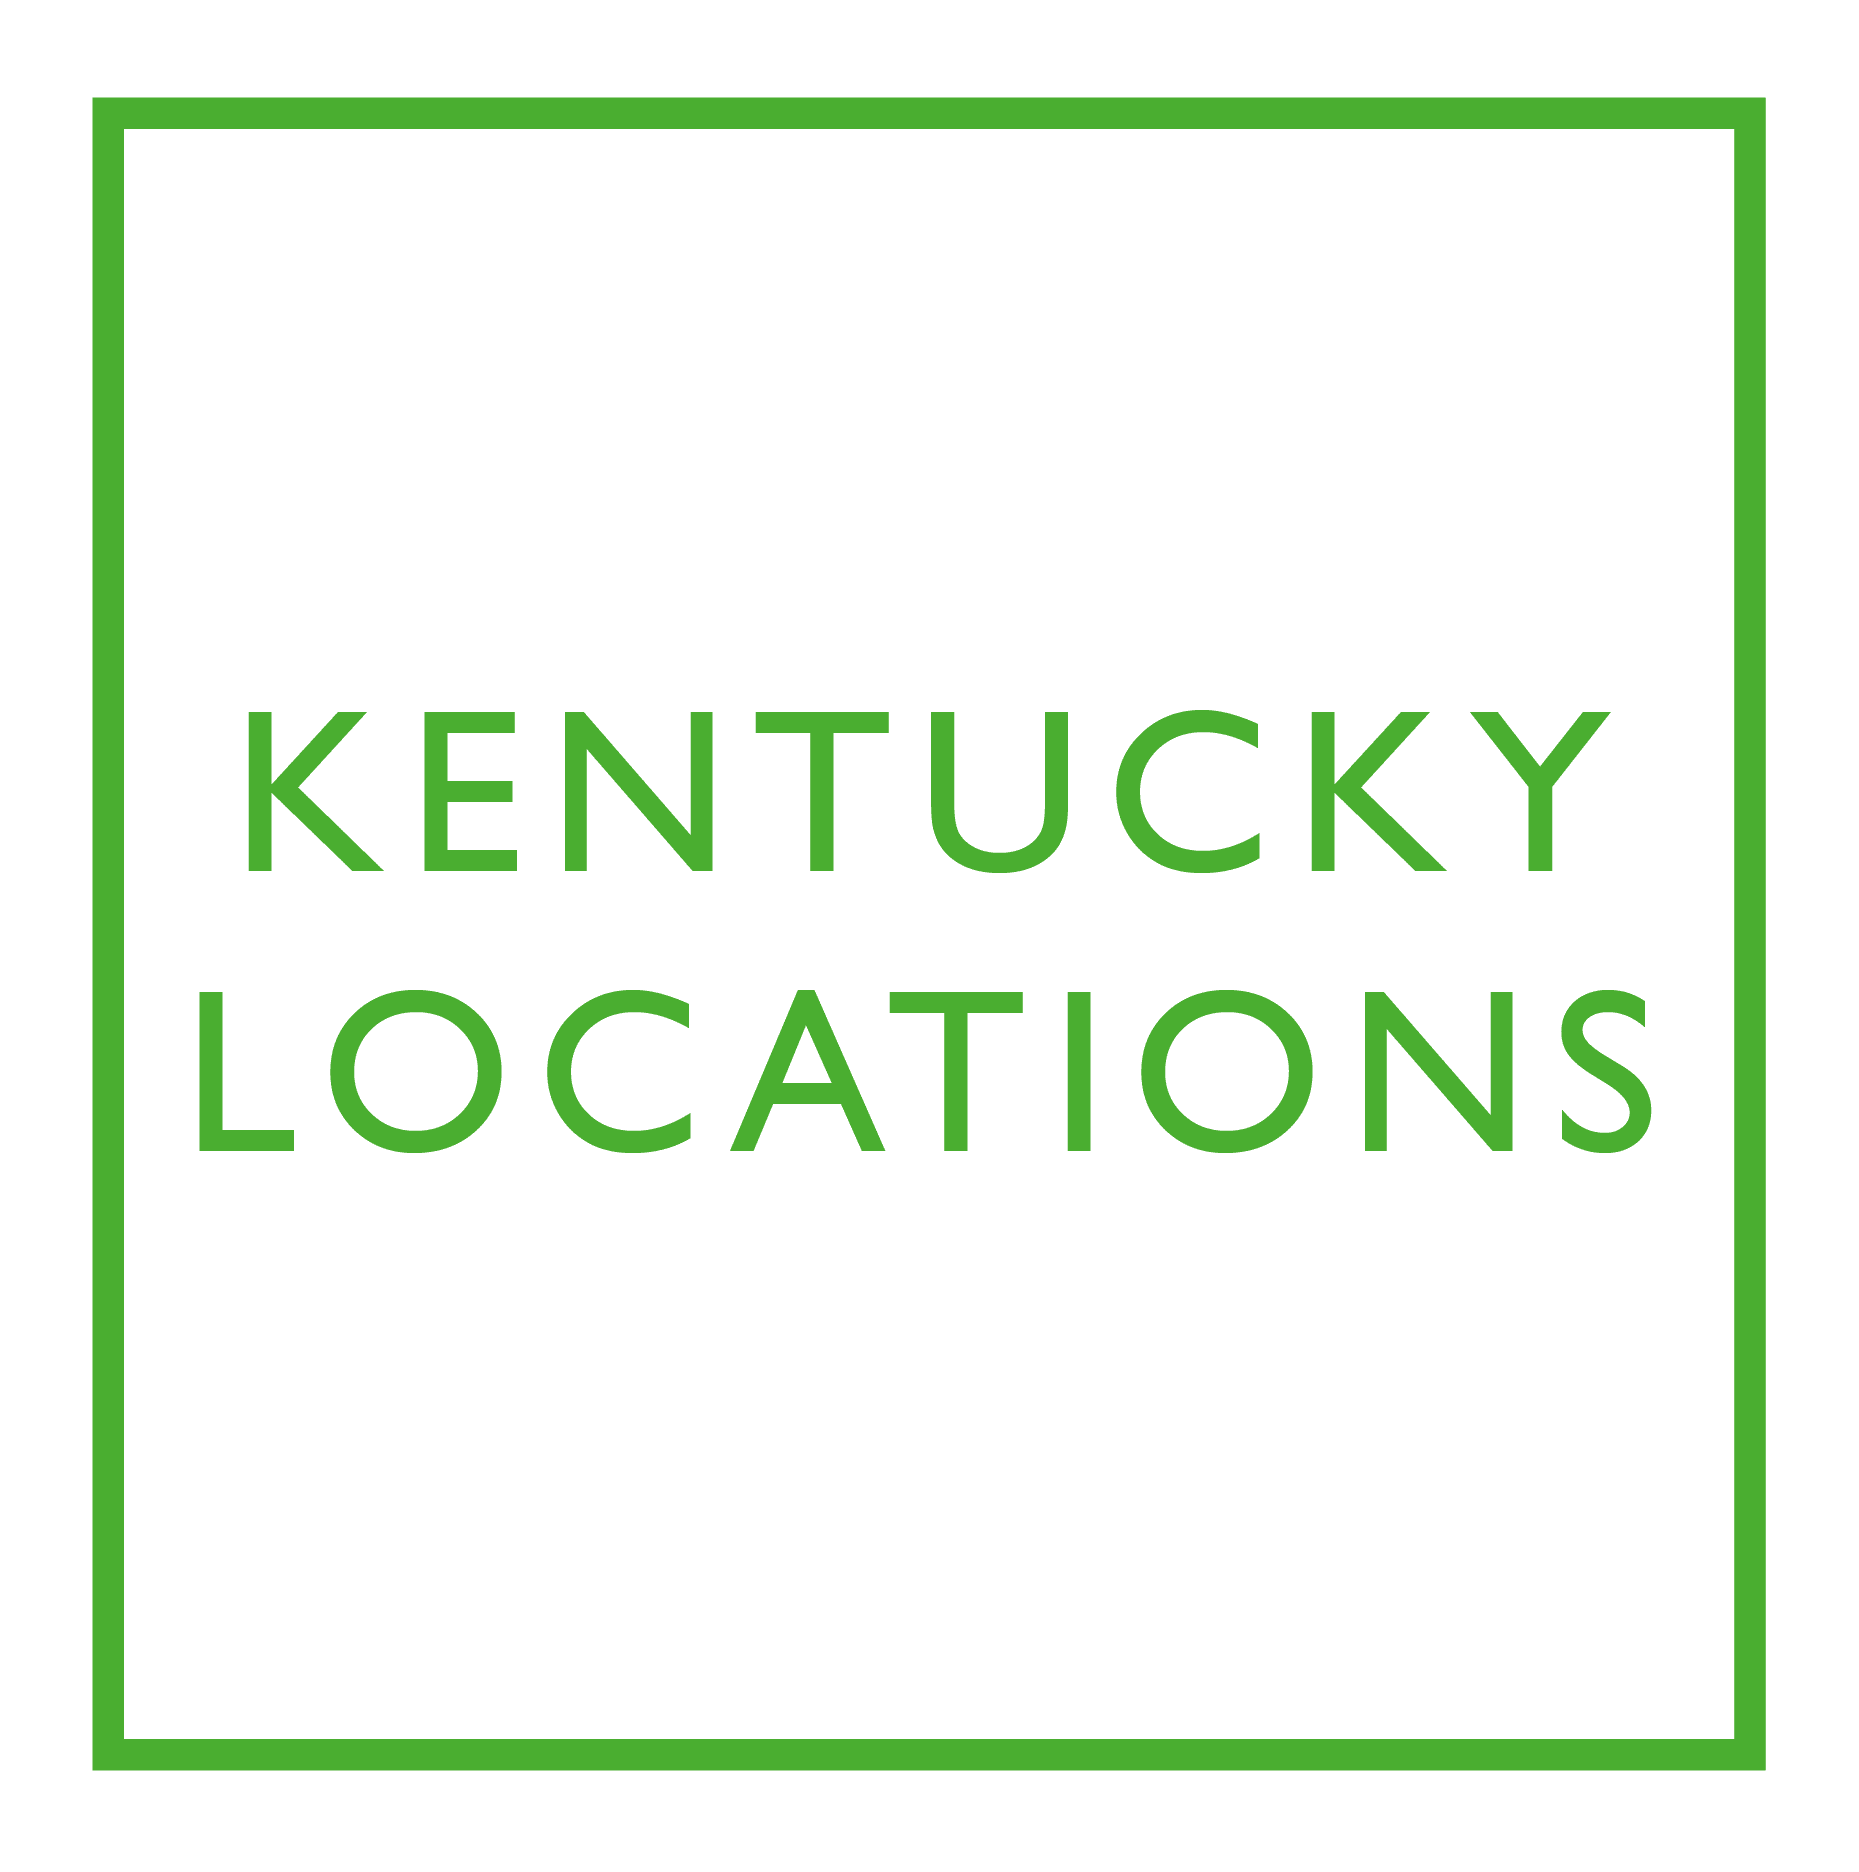 Check out our locations in Kentucky